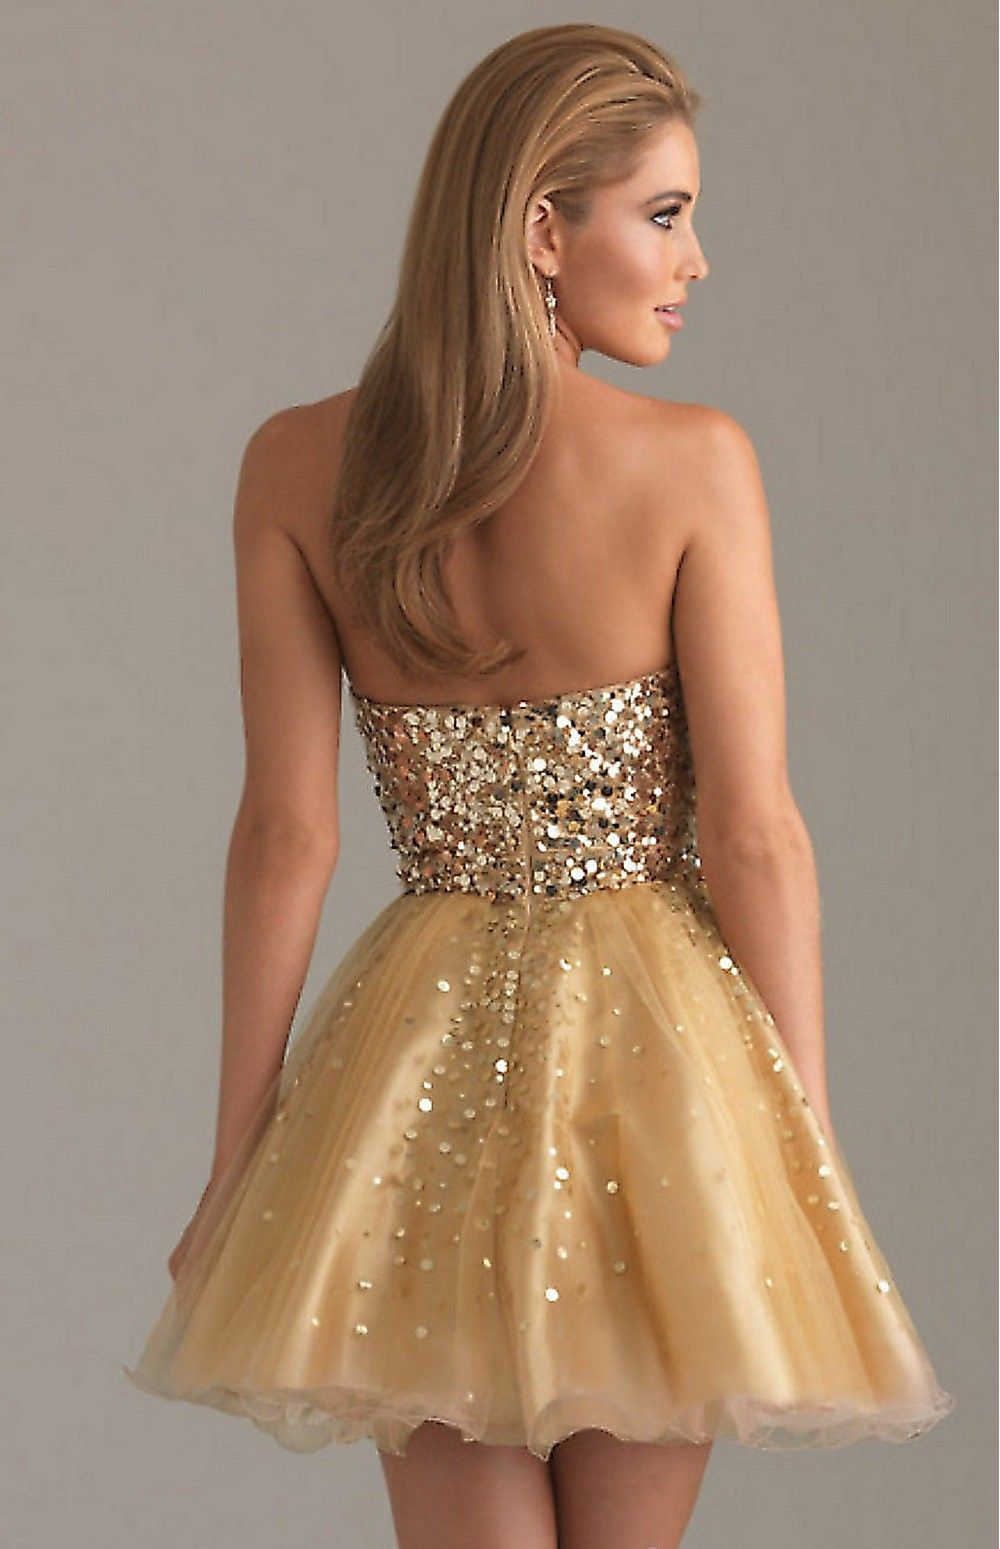 new-Short Gold Party Dress by Night Moves-2.jpg (1000×1549 ...